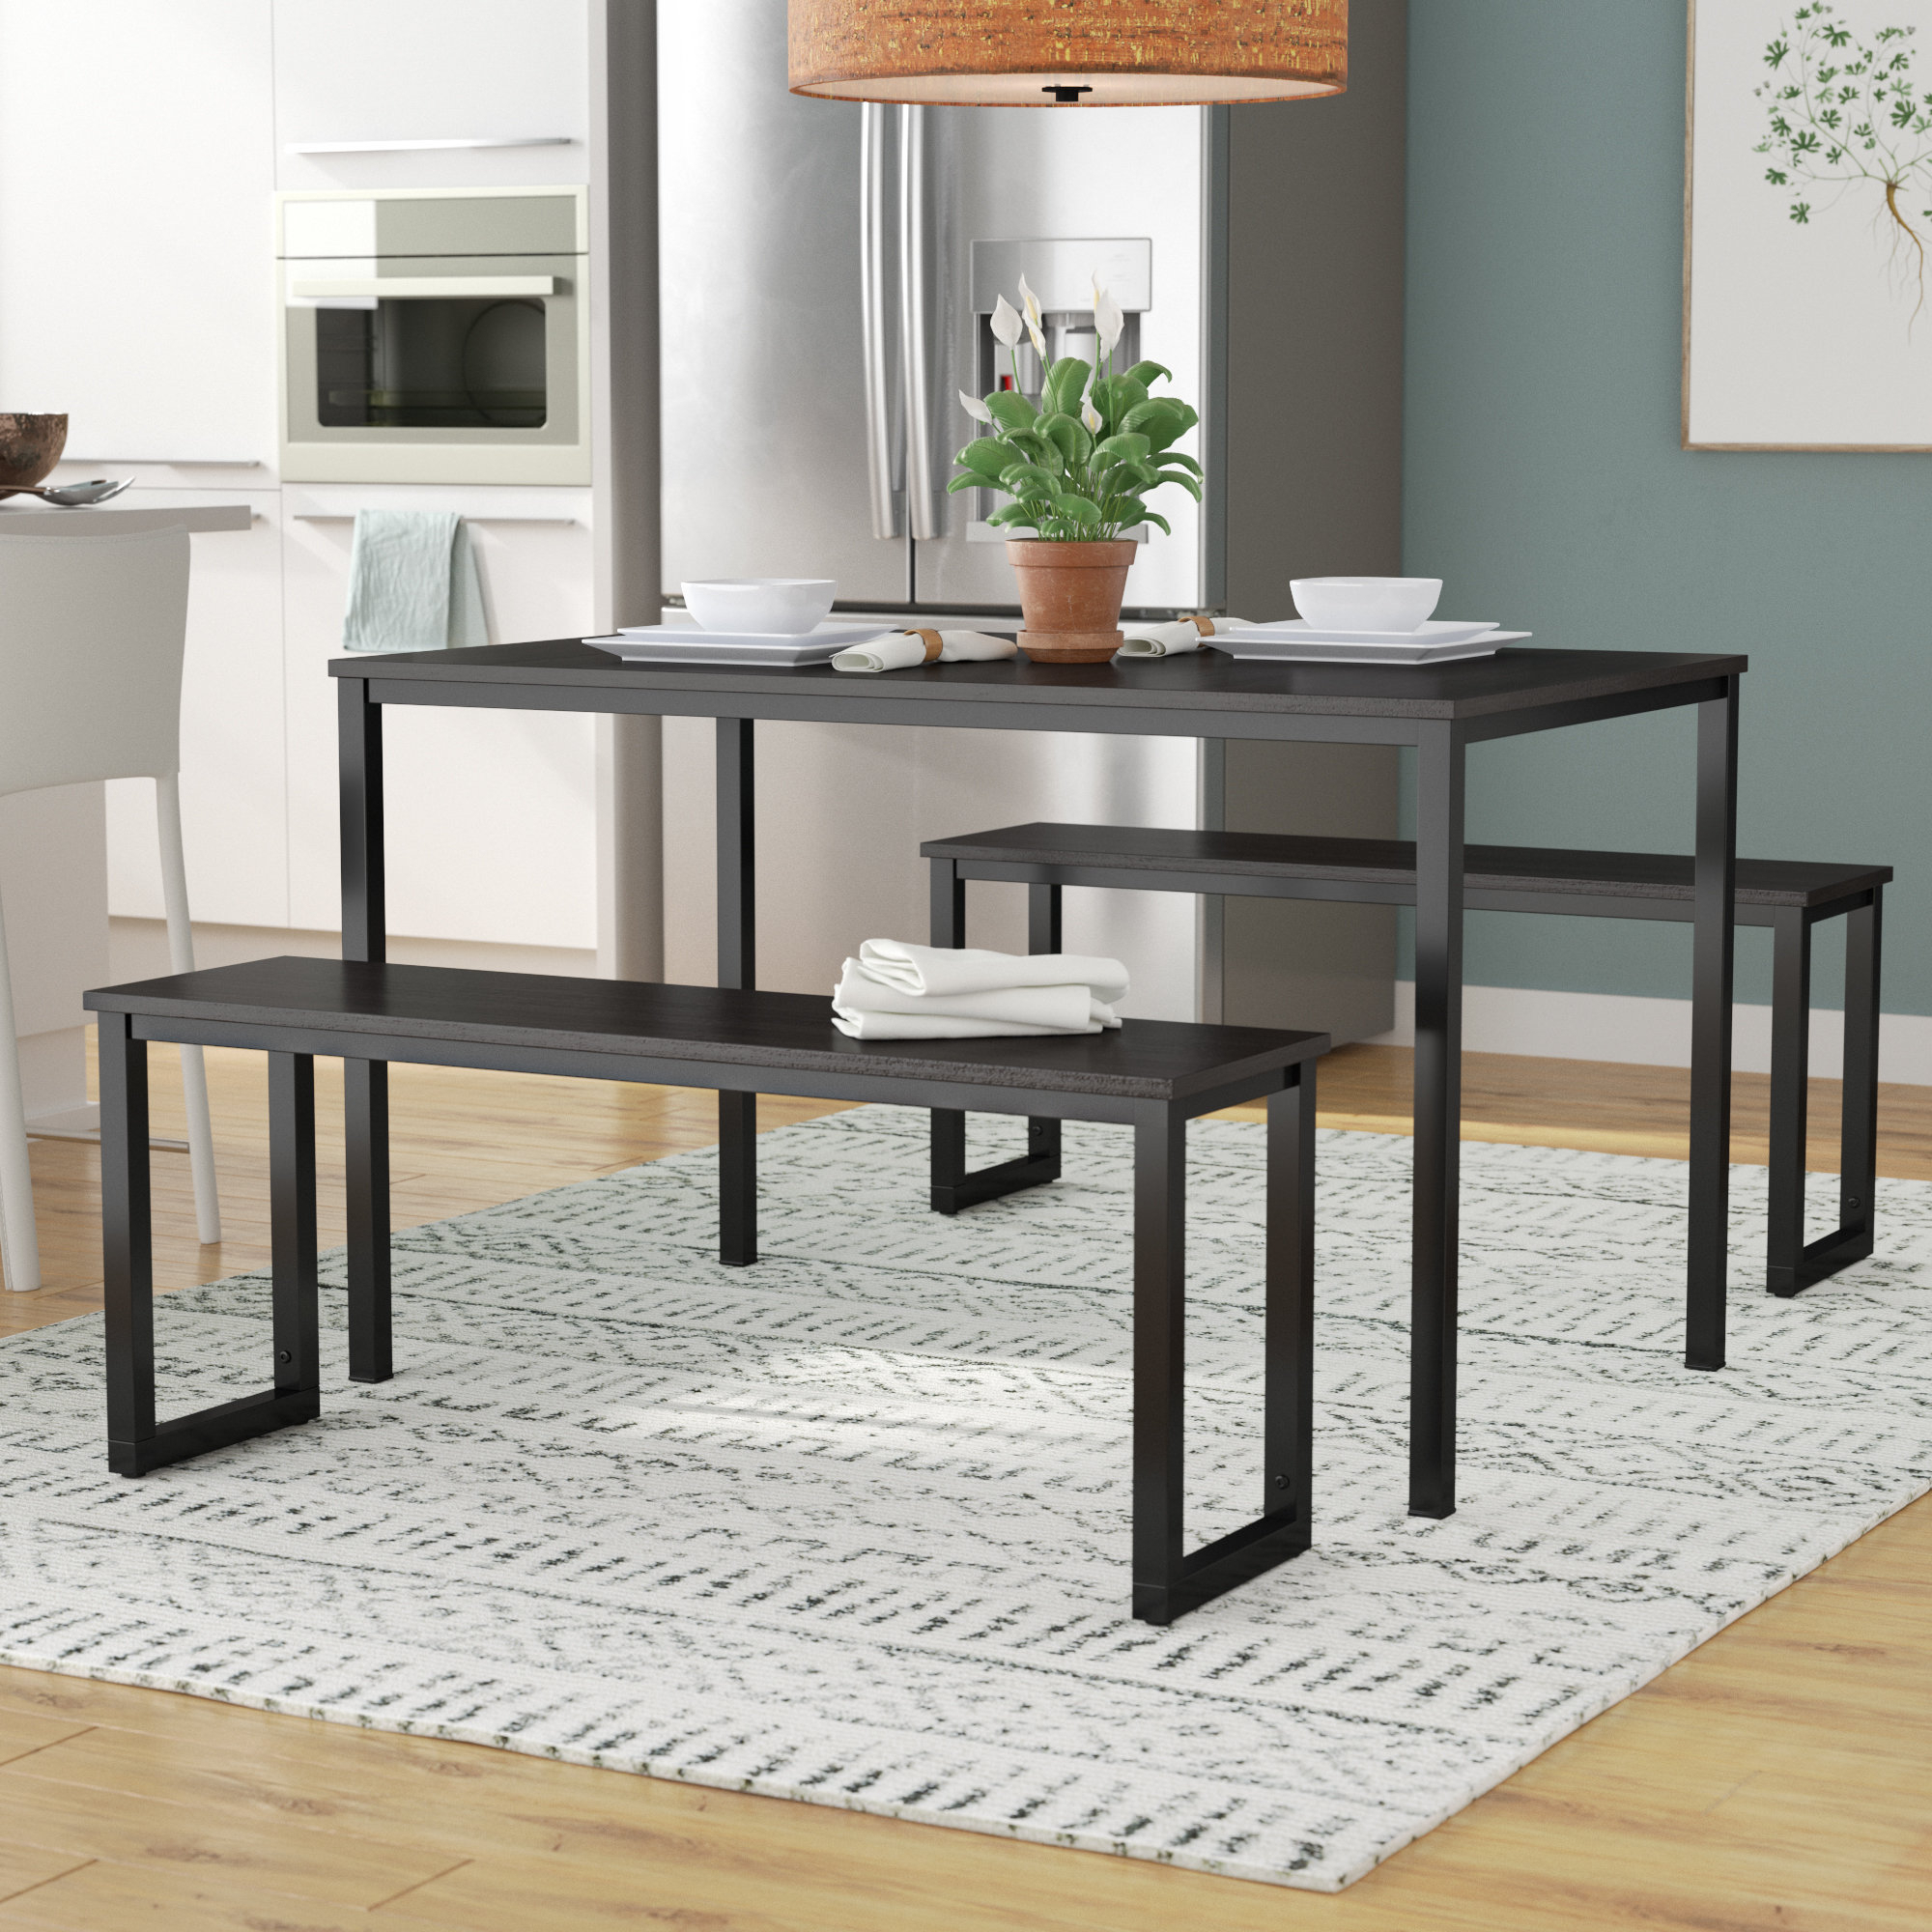 3 Piece Dining Sets In Newest Frida 3 Piece Dining Table Set (Gallery 3 of 20)